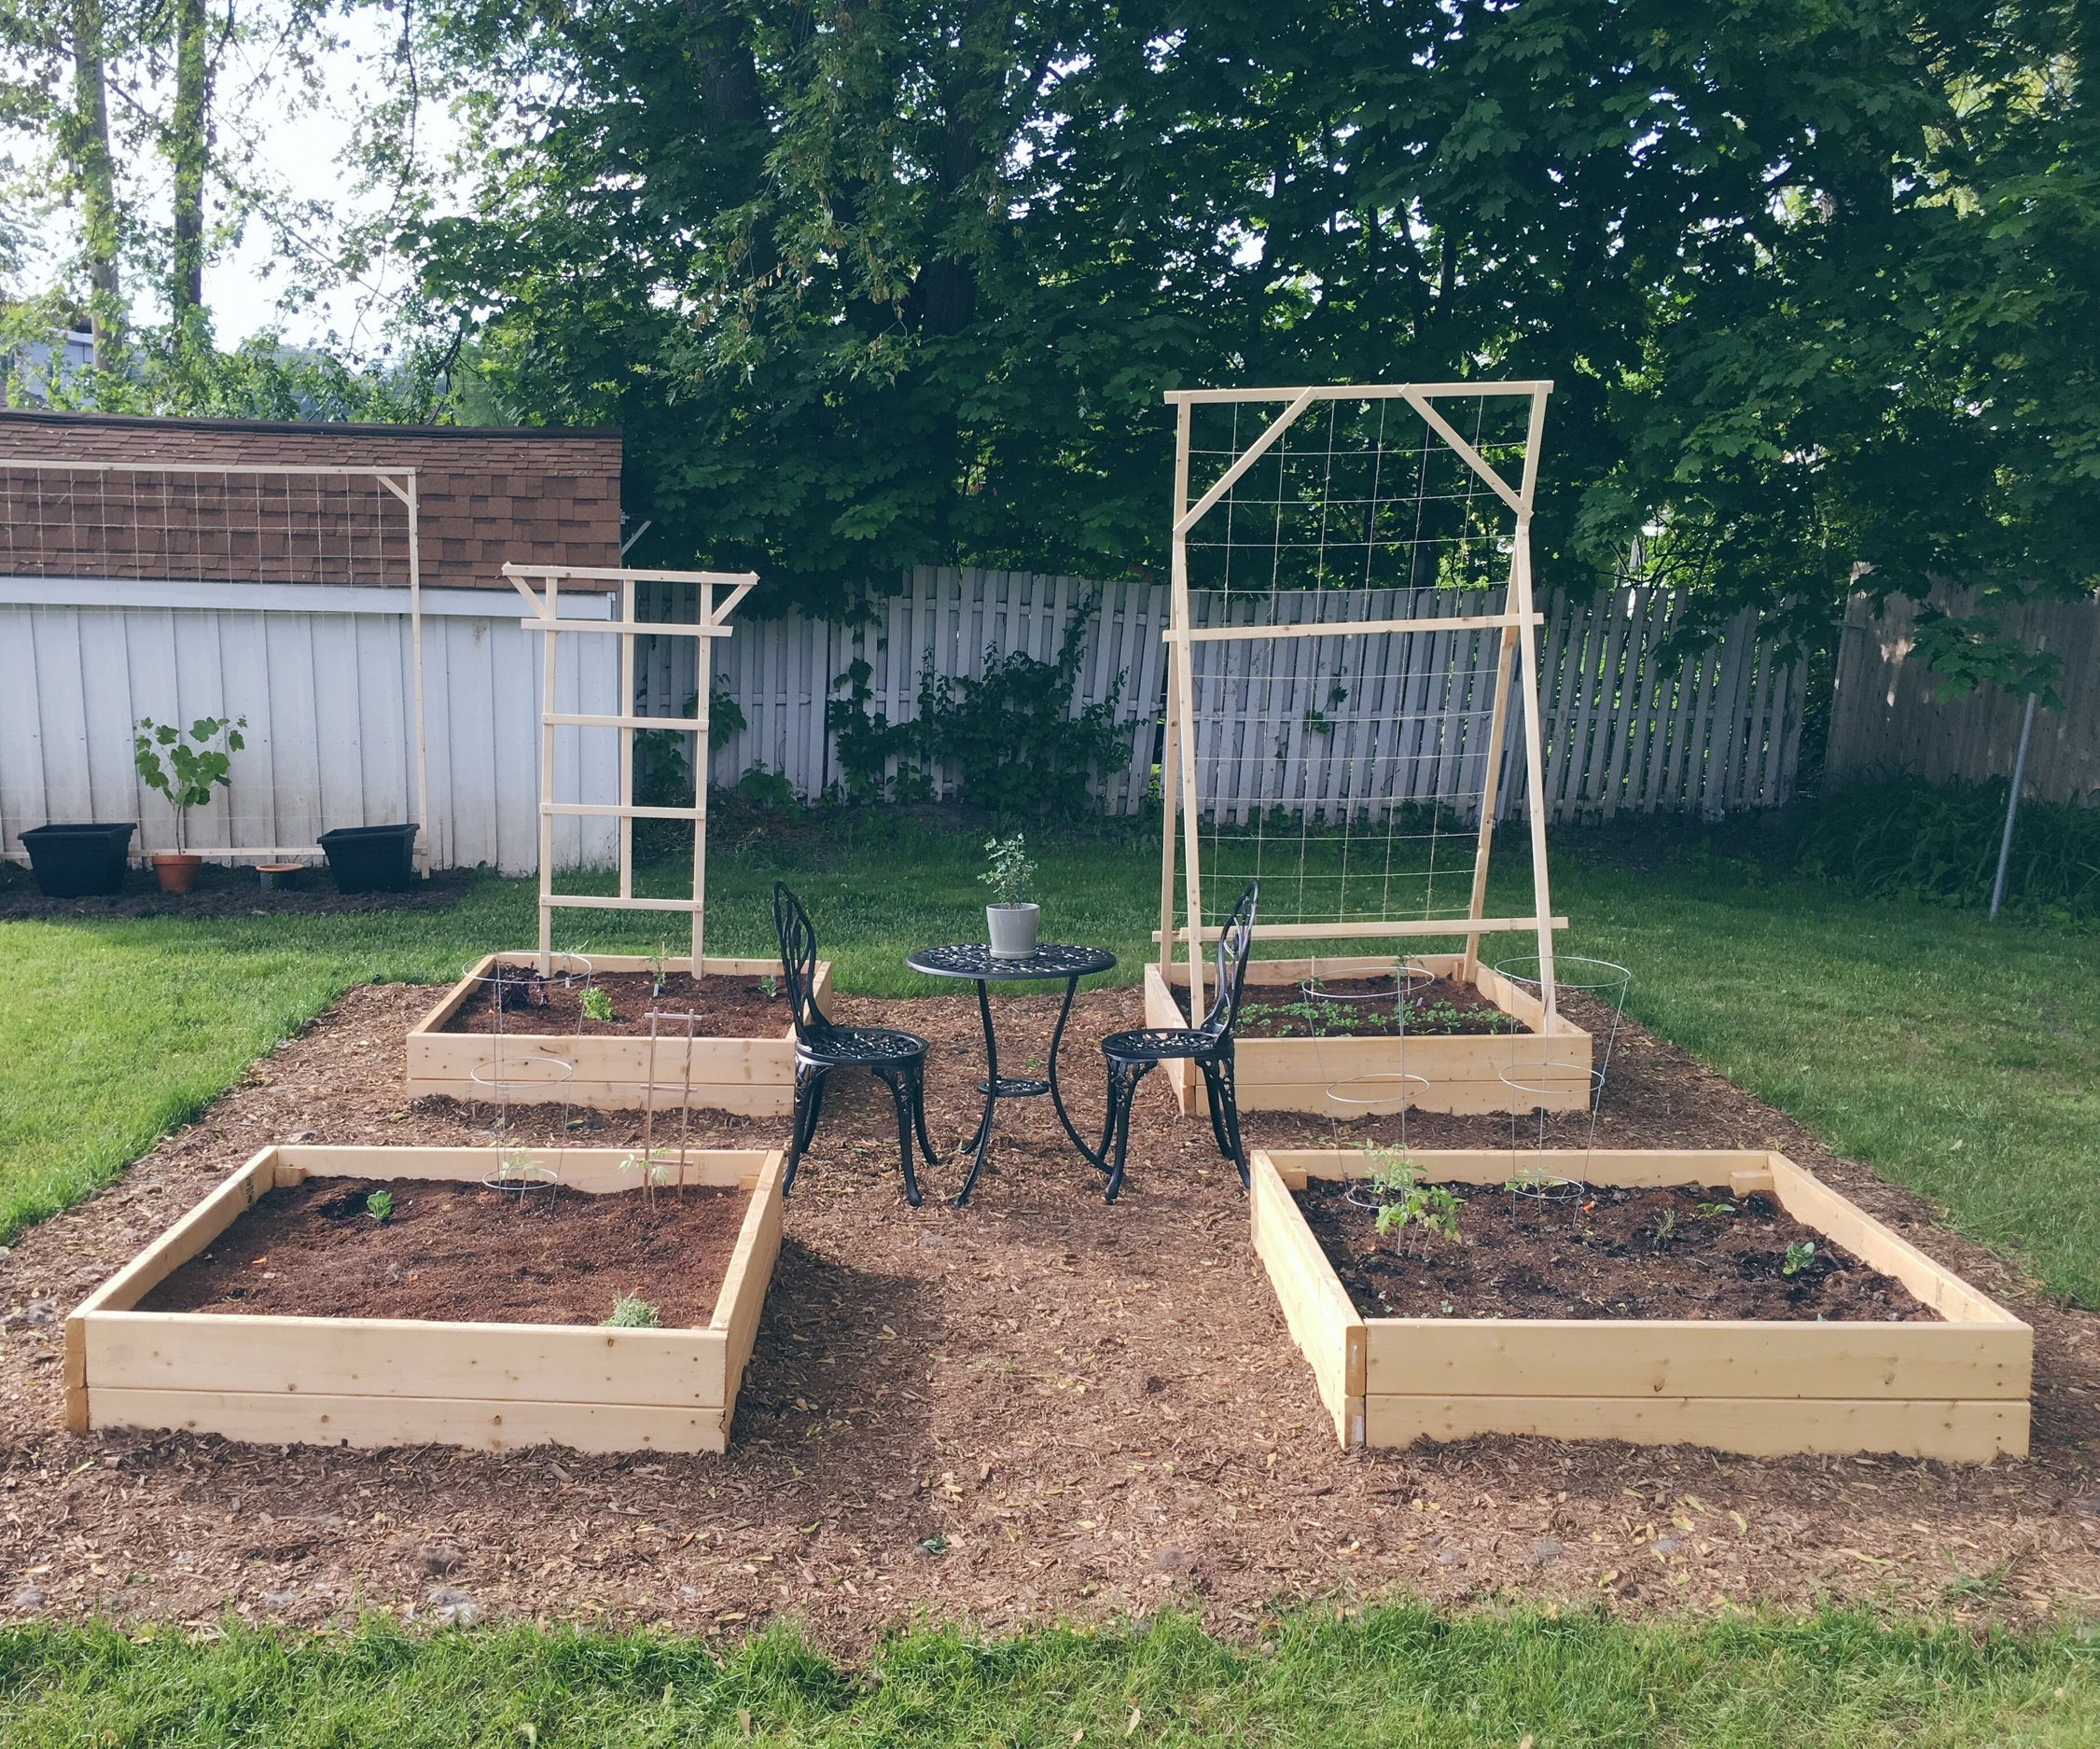 The Work of Waiting - Khouria Faith reflects on how tending a vegetable garden is helping her learn watchfulness, new strategies for managing worries and fear, and how to face frustrations in a more productive way.